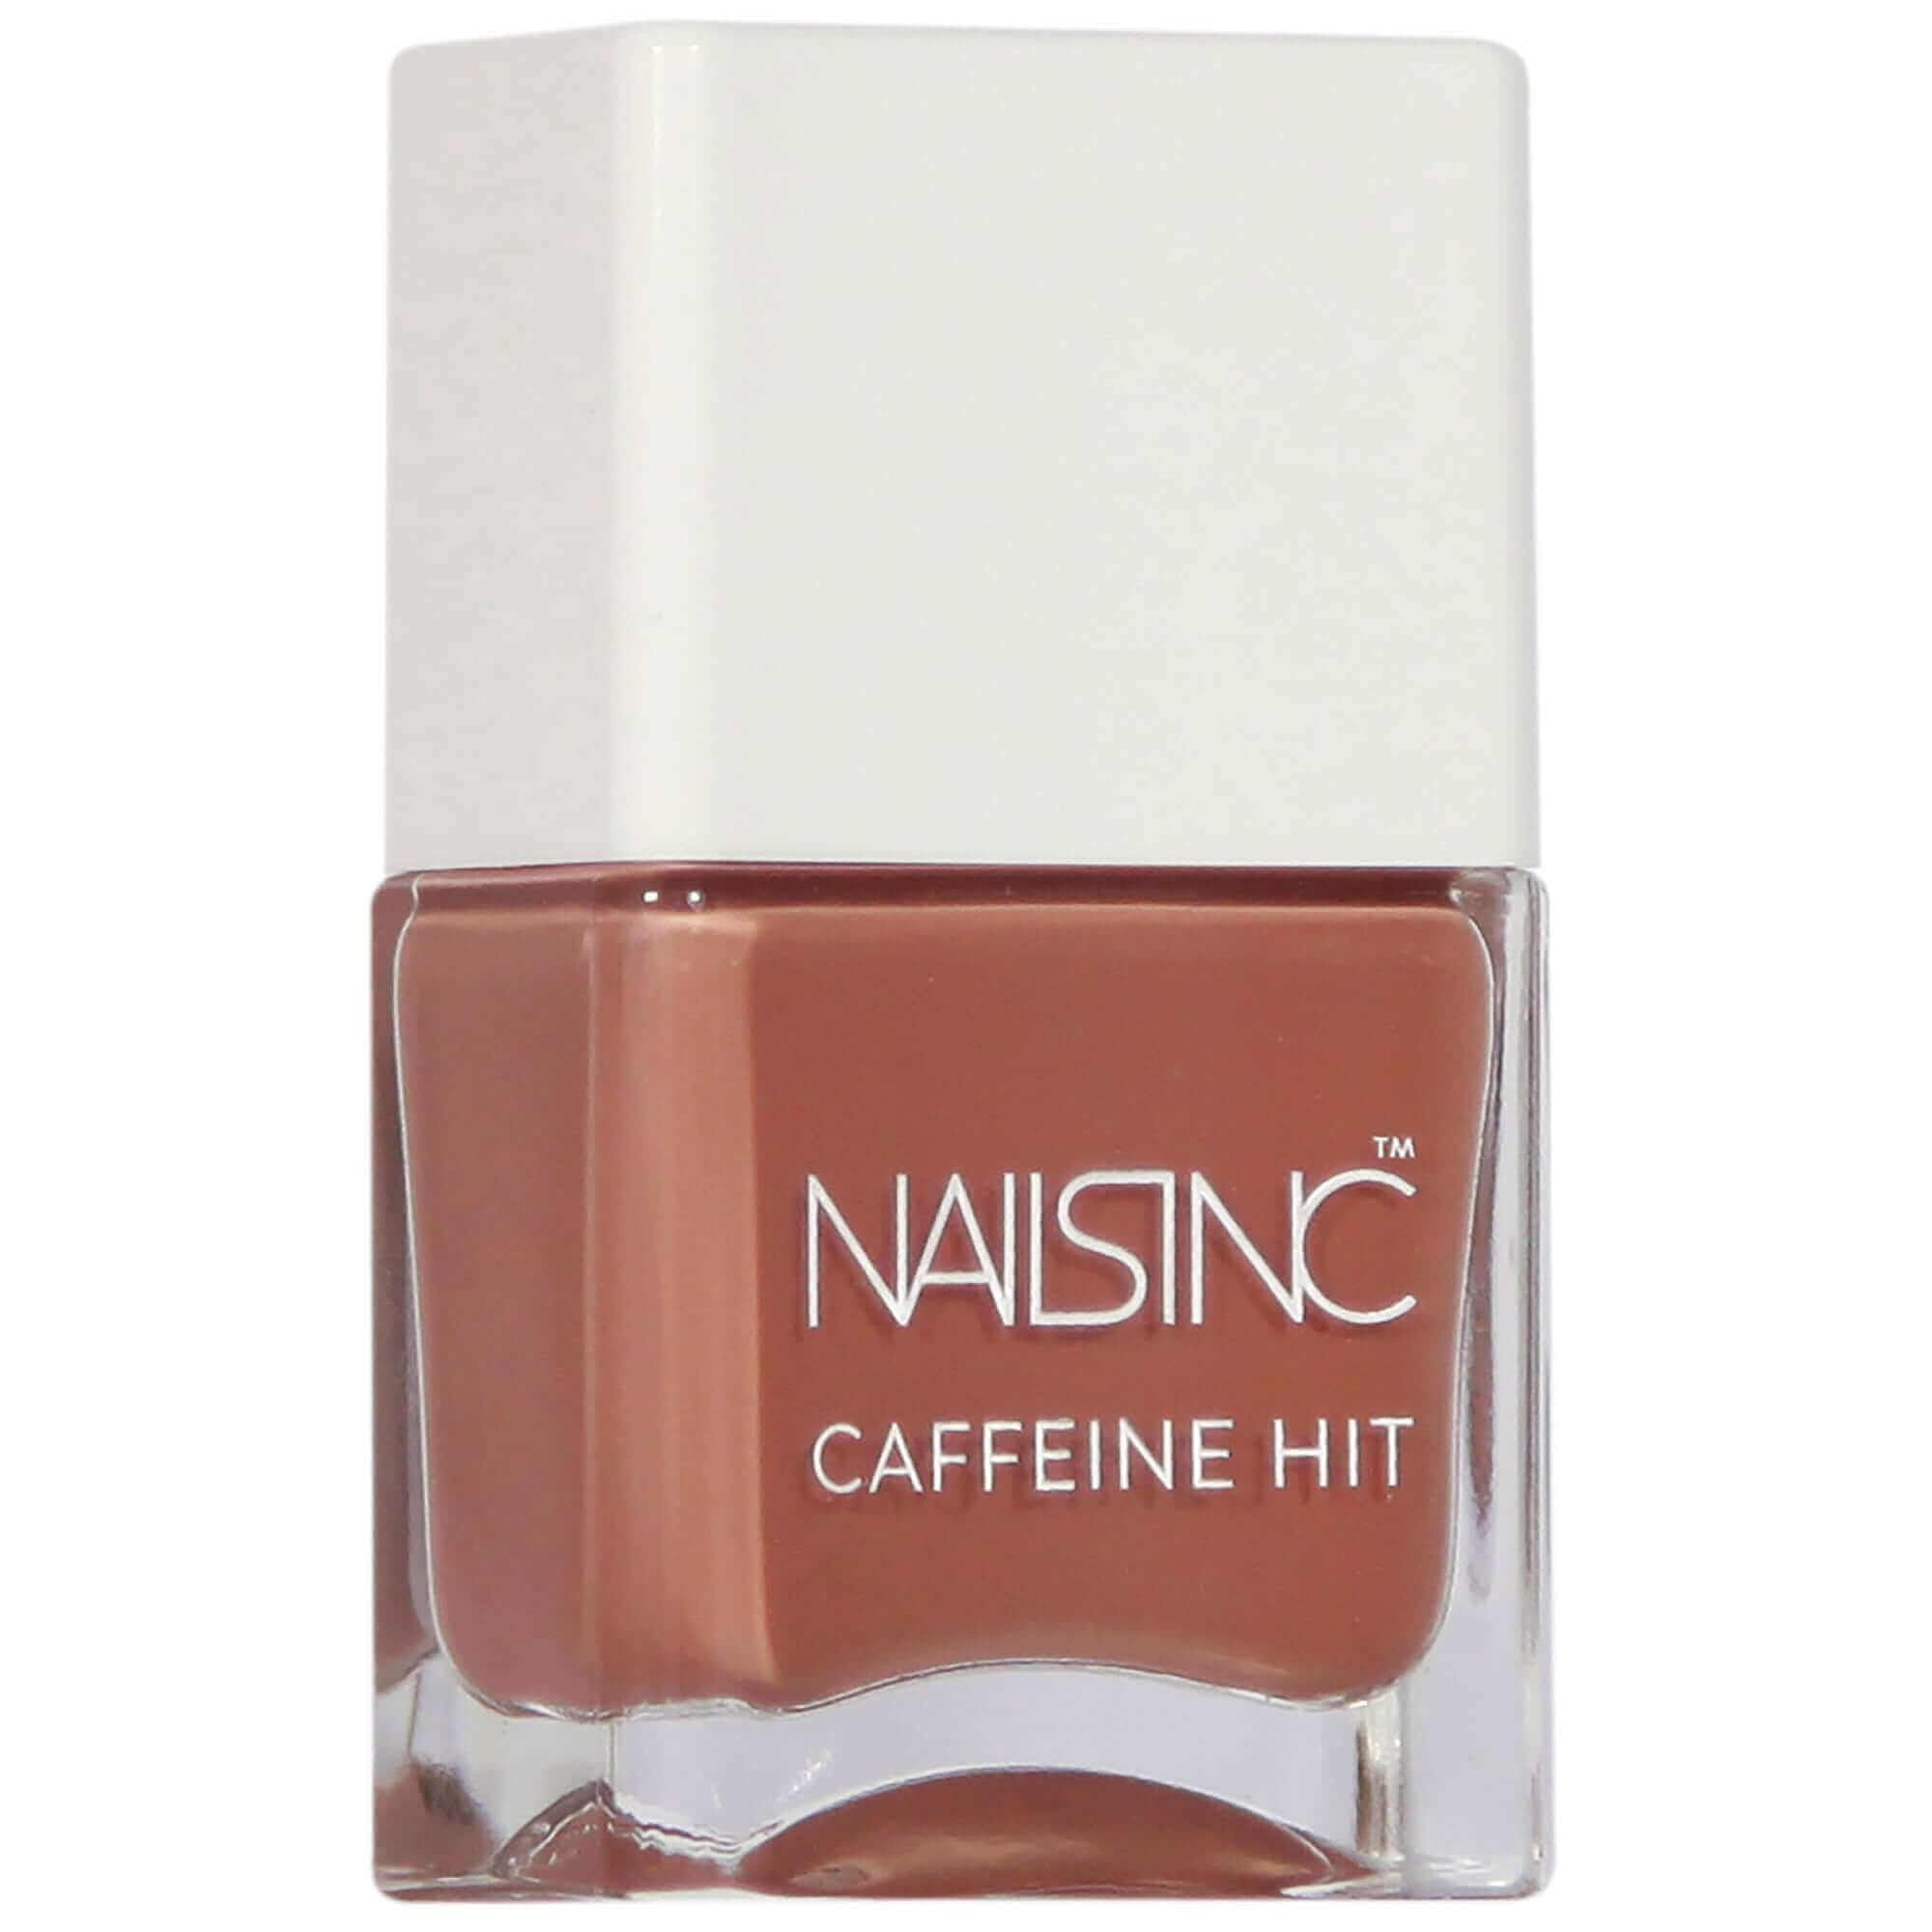 Nails inc Caffeine Hit Collection - Chai Kiss Nail Polish 14ml